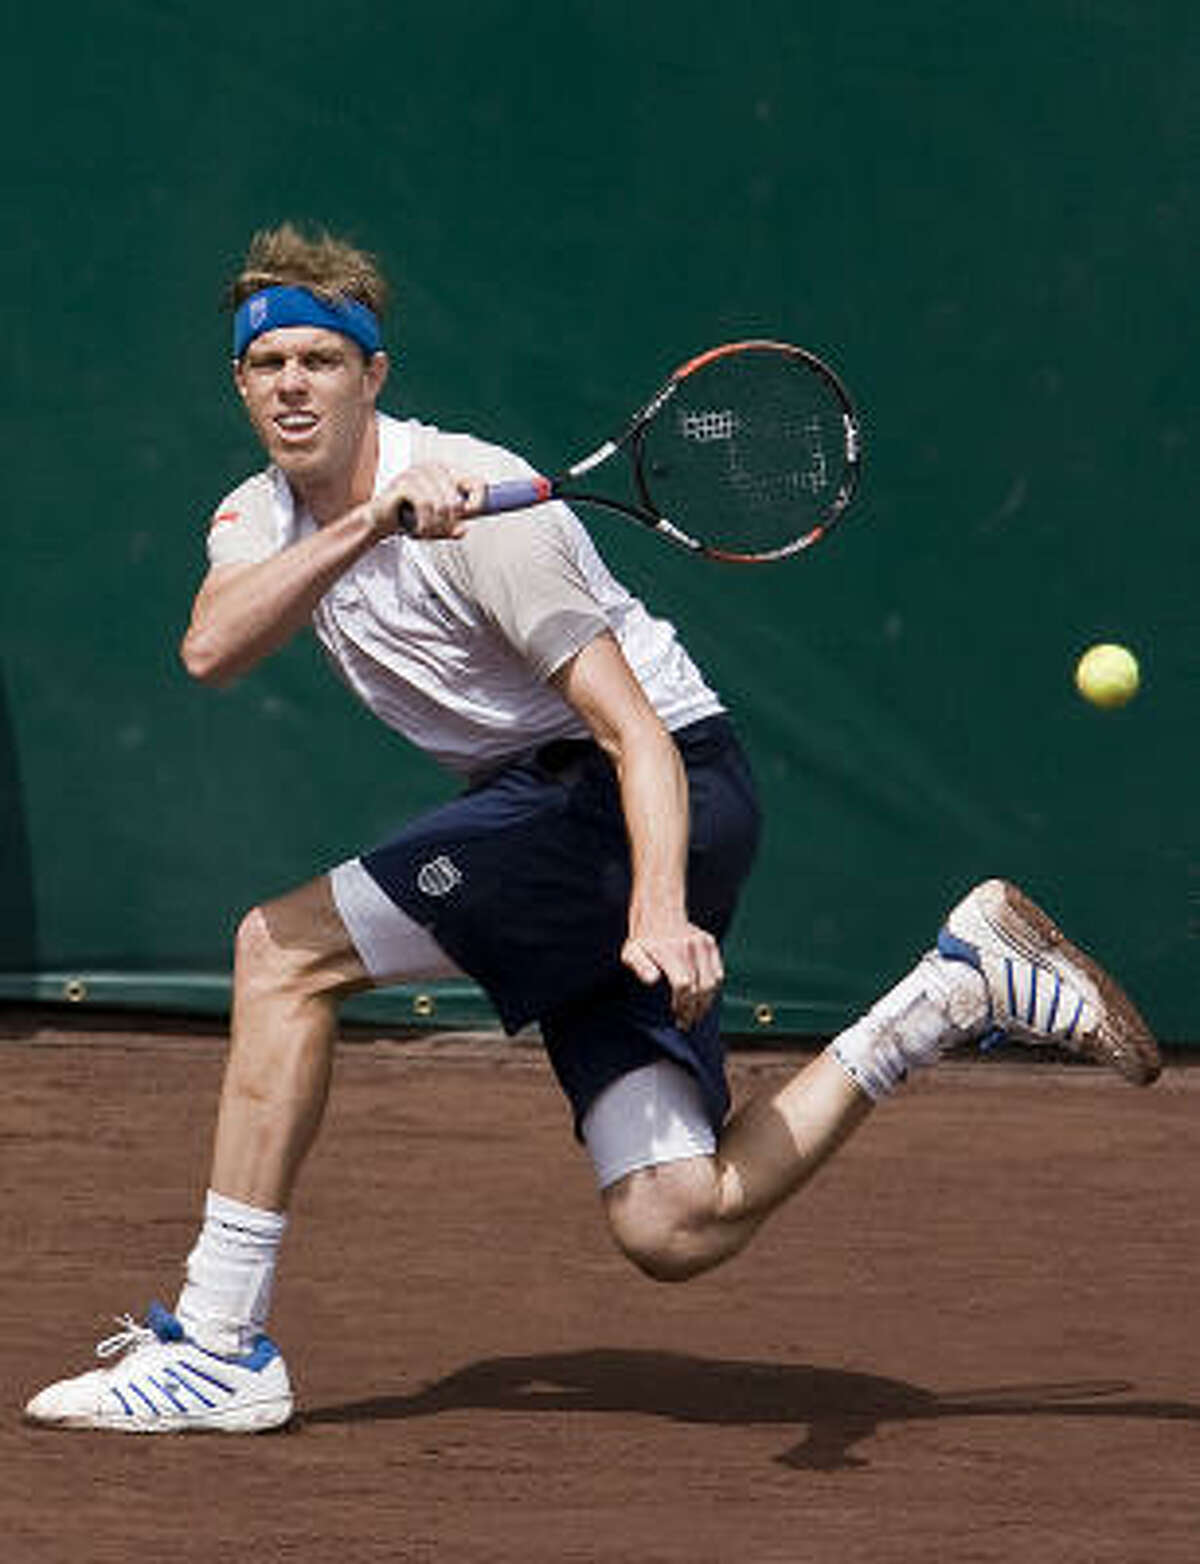 Sam Querrey's huge serve makes him a dangerous opponent, even if he doesn't have a long résumé on clay.